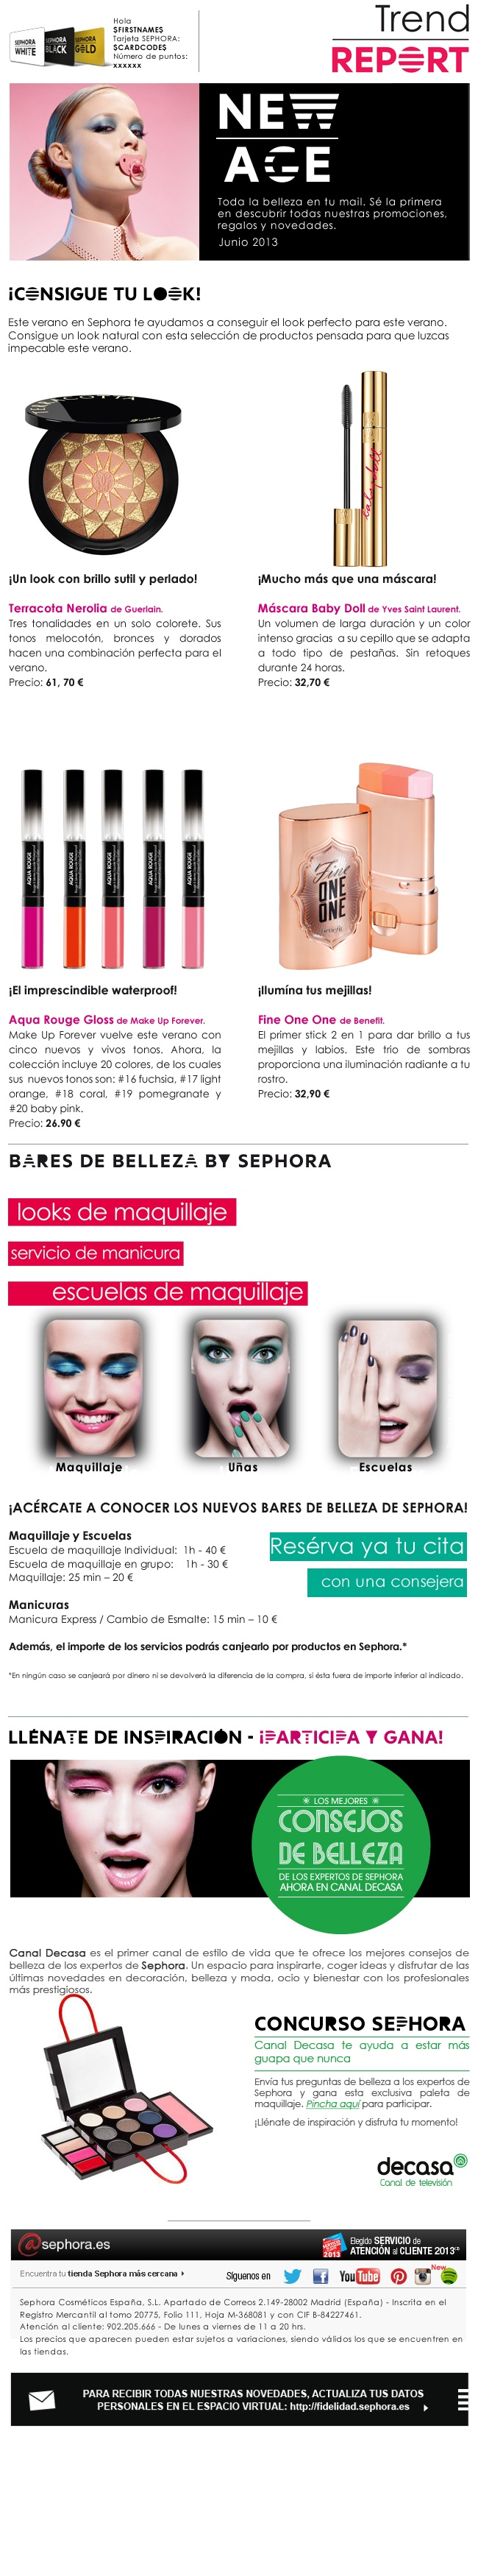 Newsletter Sephora - junio 2013